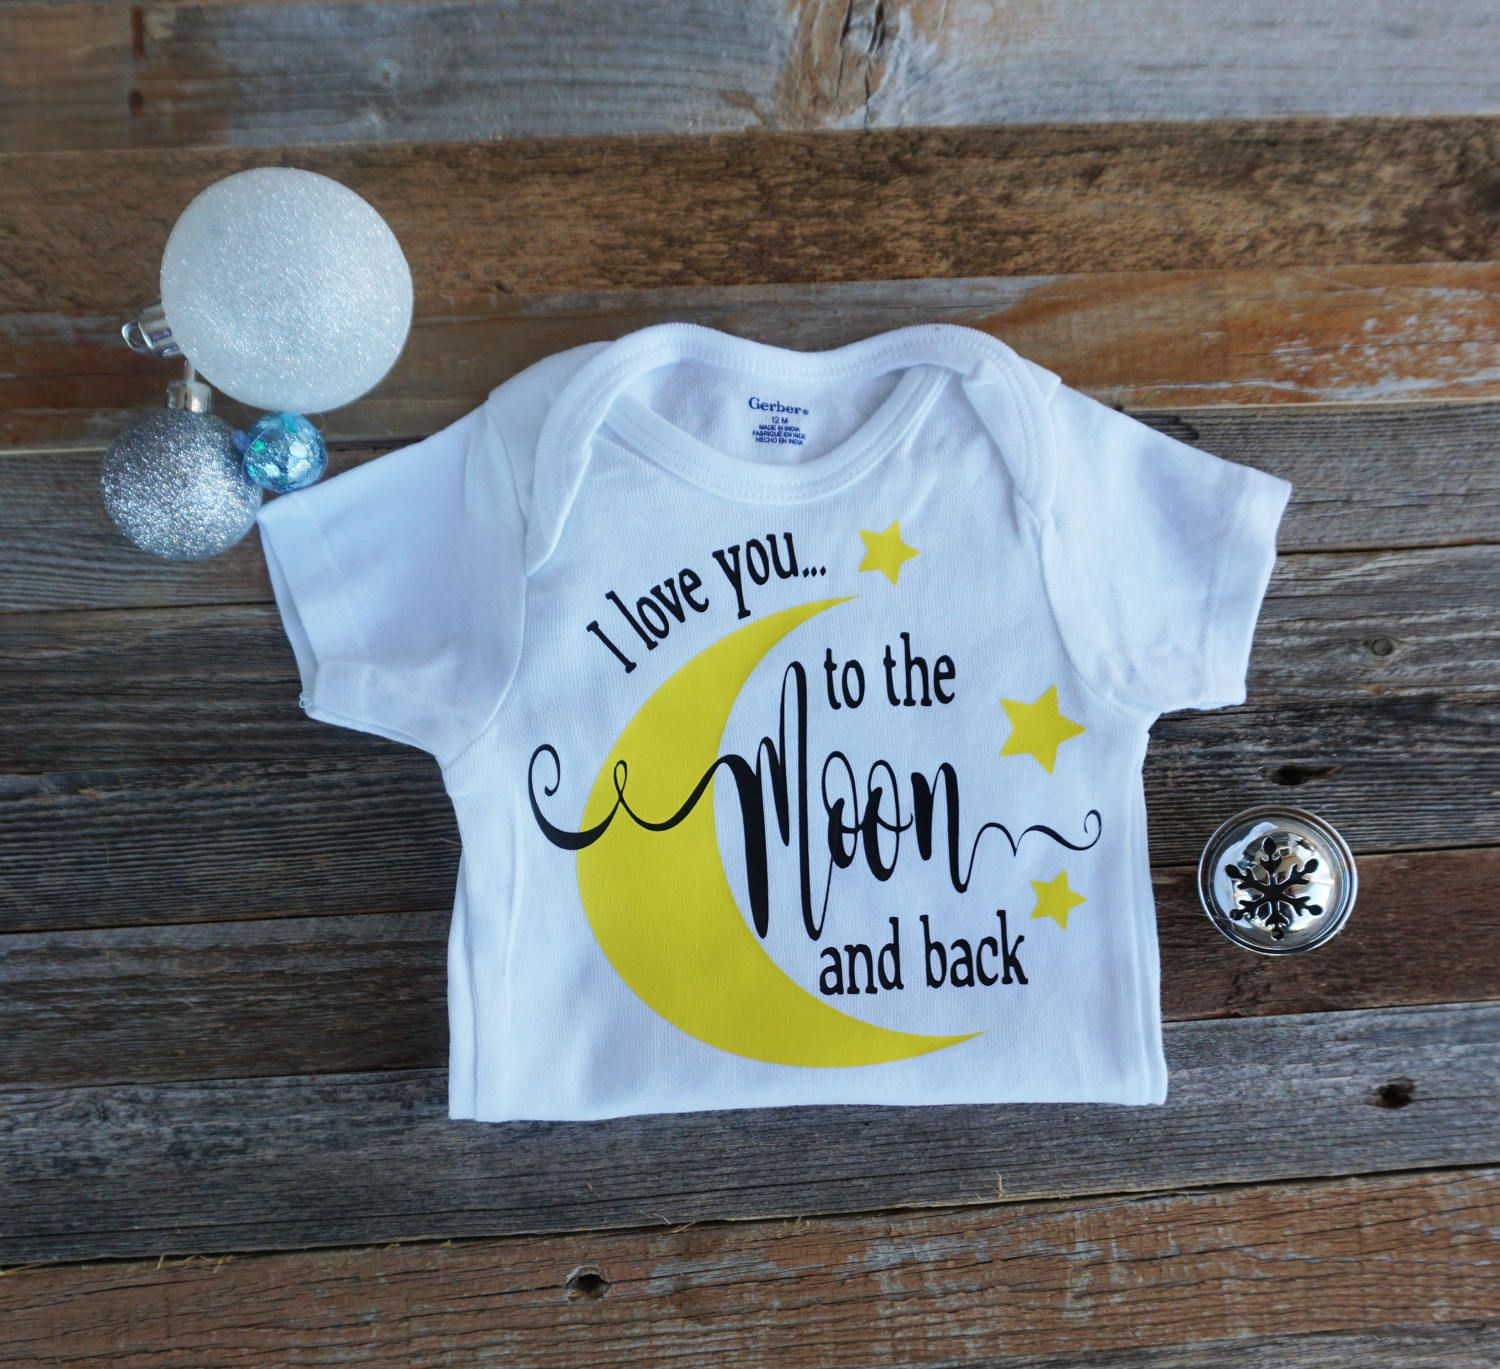 36086dcd99 I LOVE YOU to the moon and back, Cute onesies, Baby Boy onesie, Baby Girl  onesie, to the moon and back onesie, baby shower gift, Christmas by ...